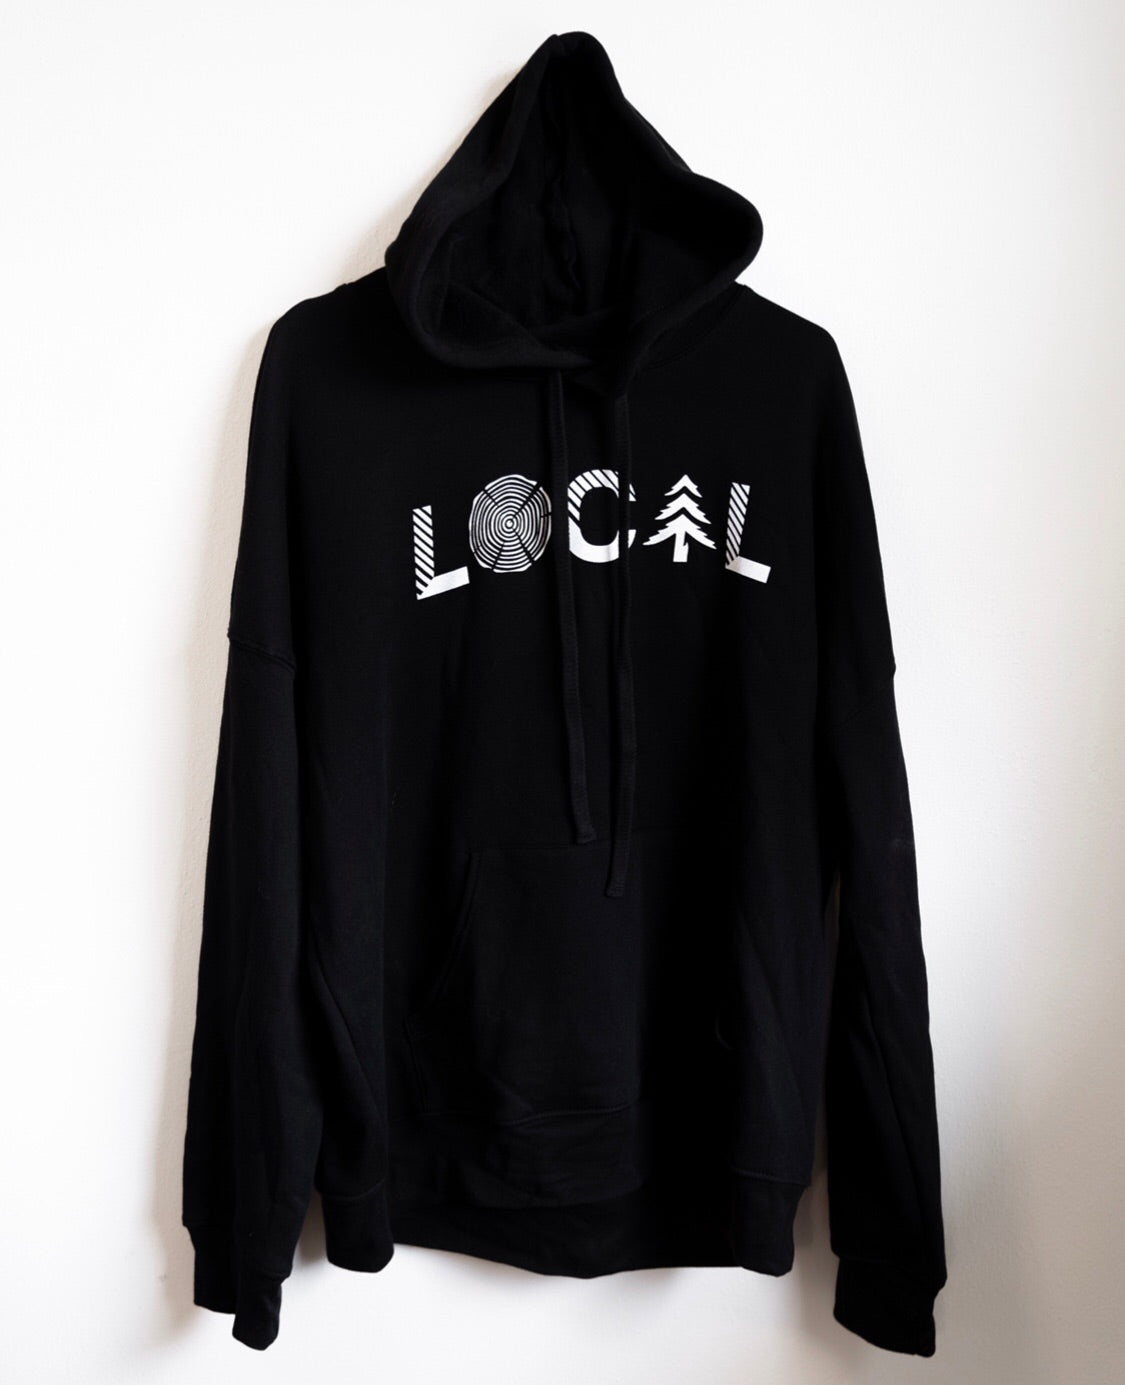 LOCAL Hoodie - Black